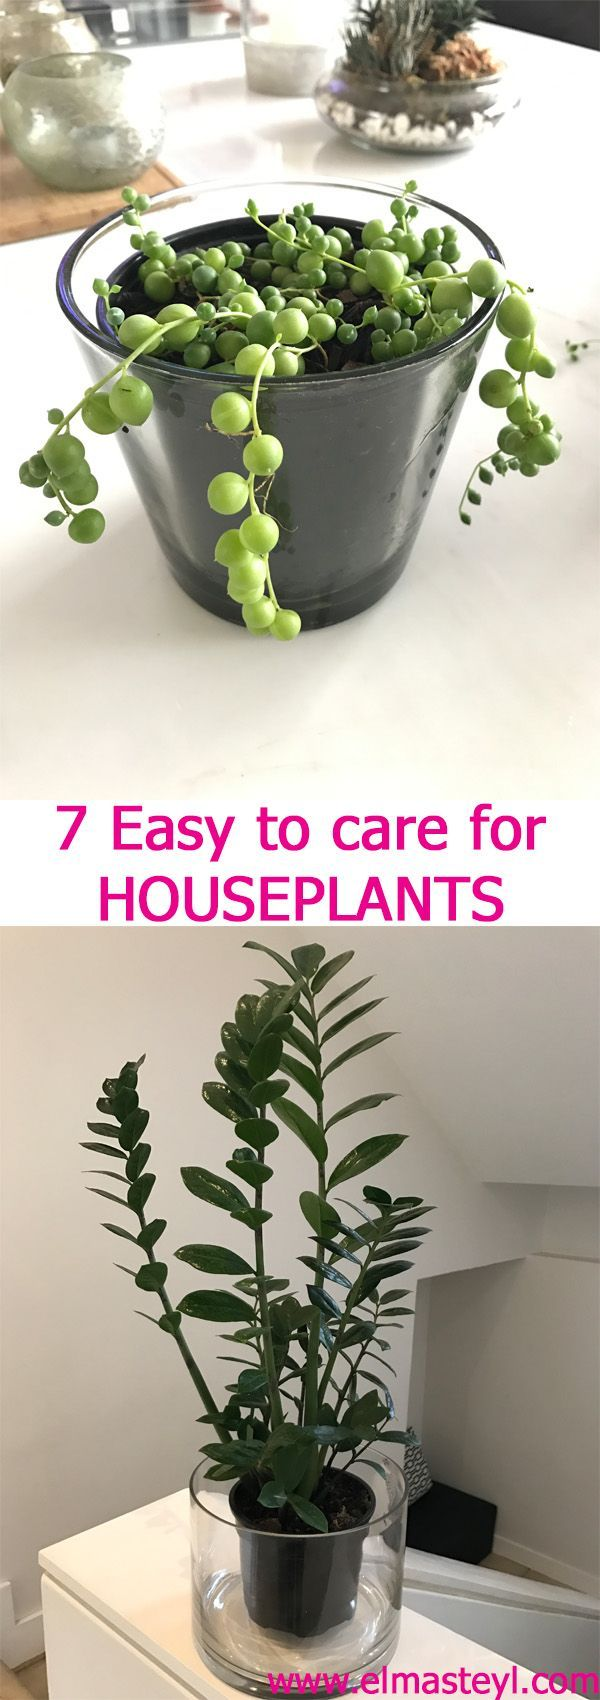 Read more about these easy to care for Houseplants on the blog...